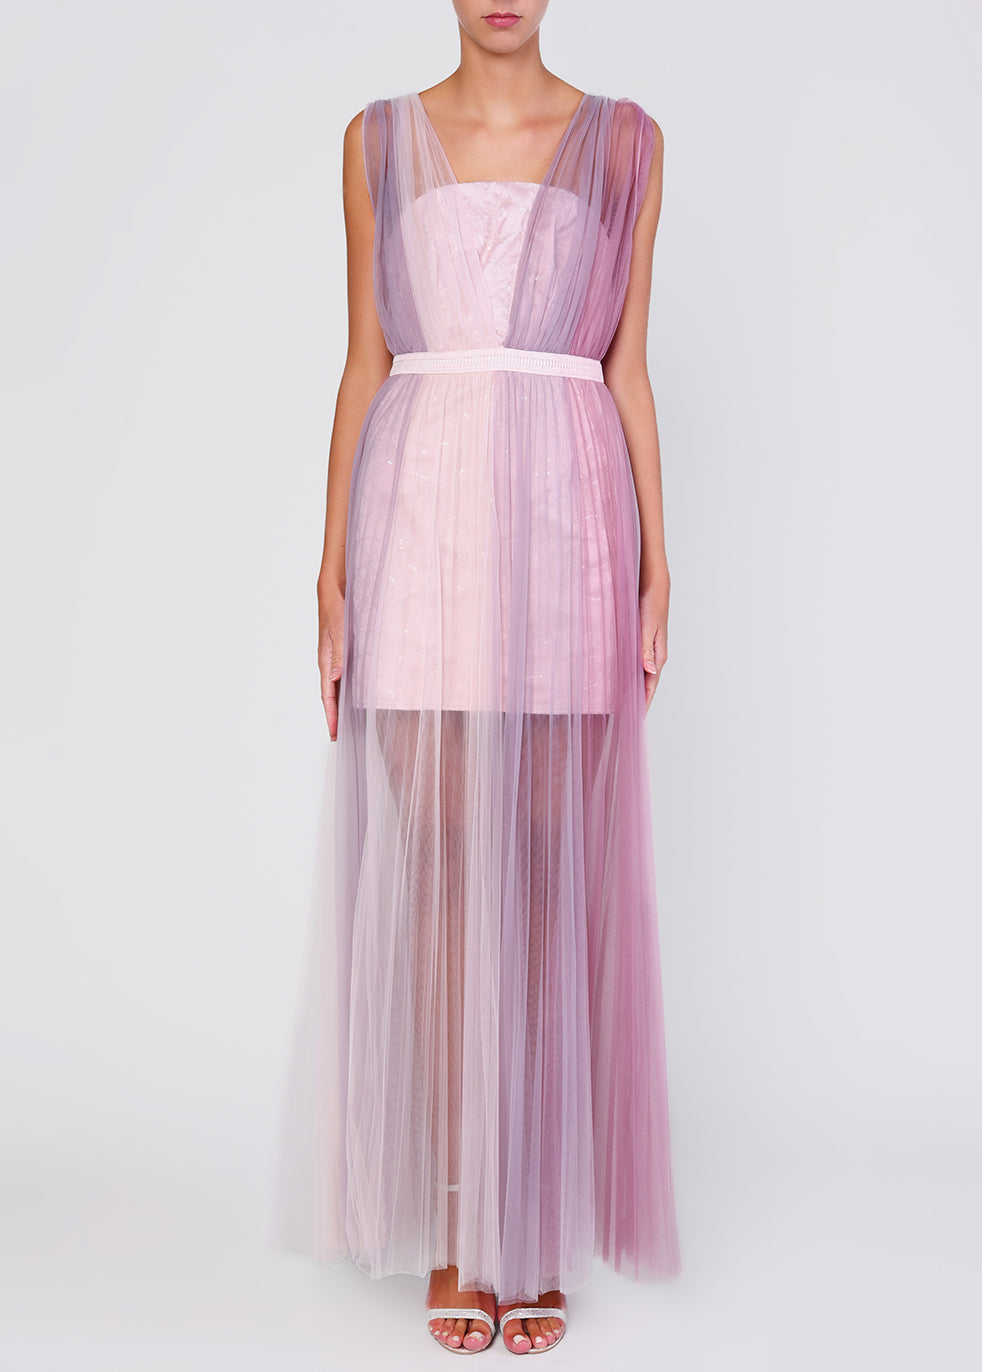 Lilac Ombre Tulle Maxi Dress